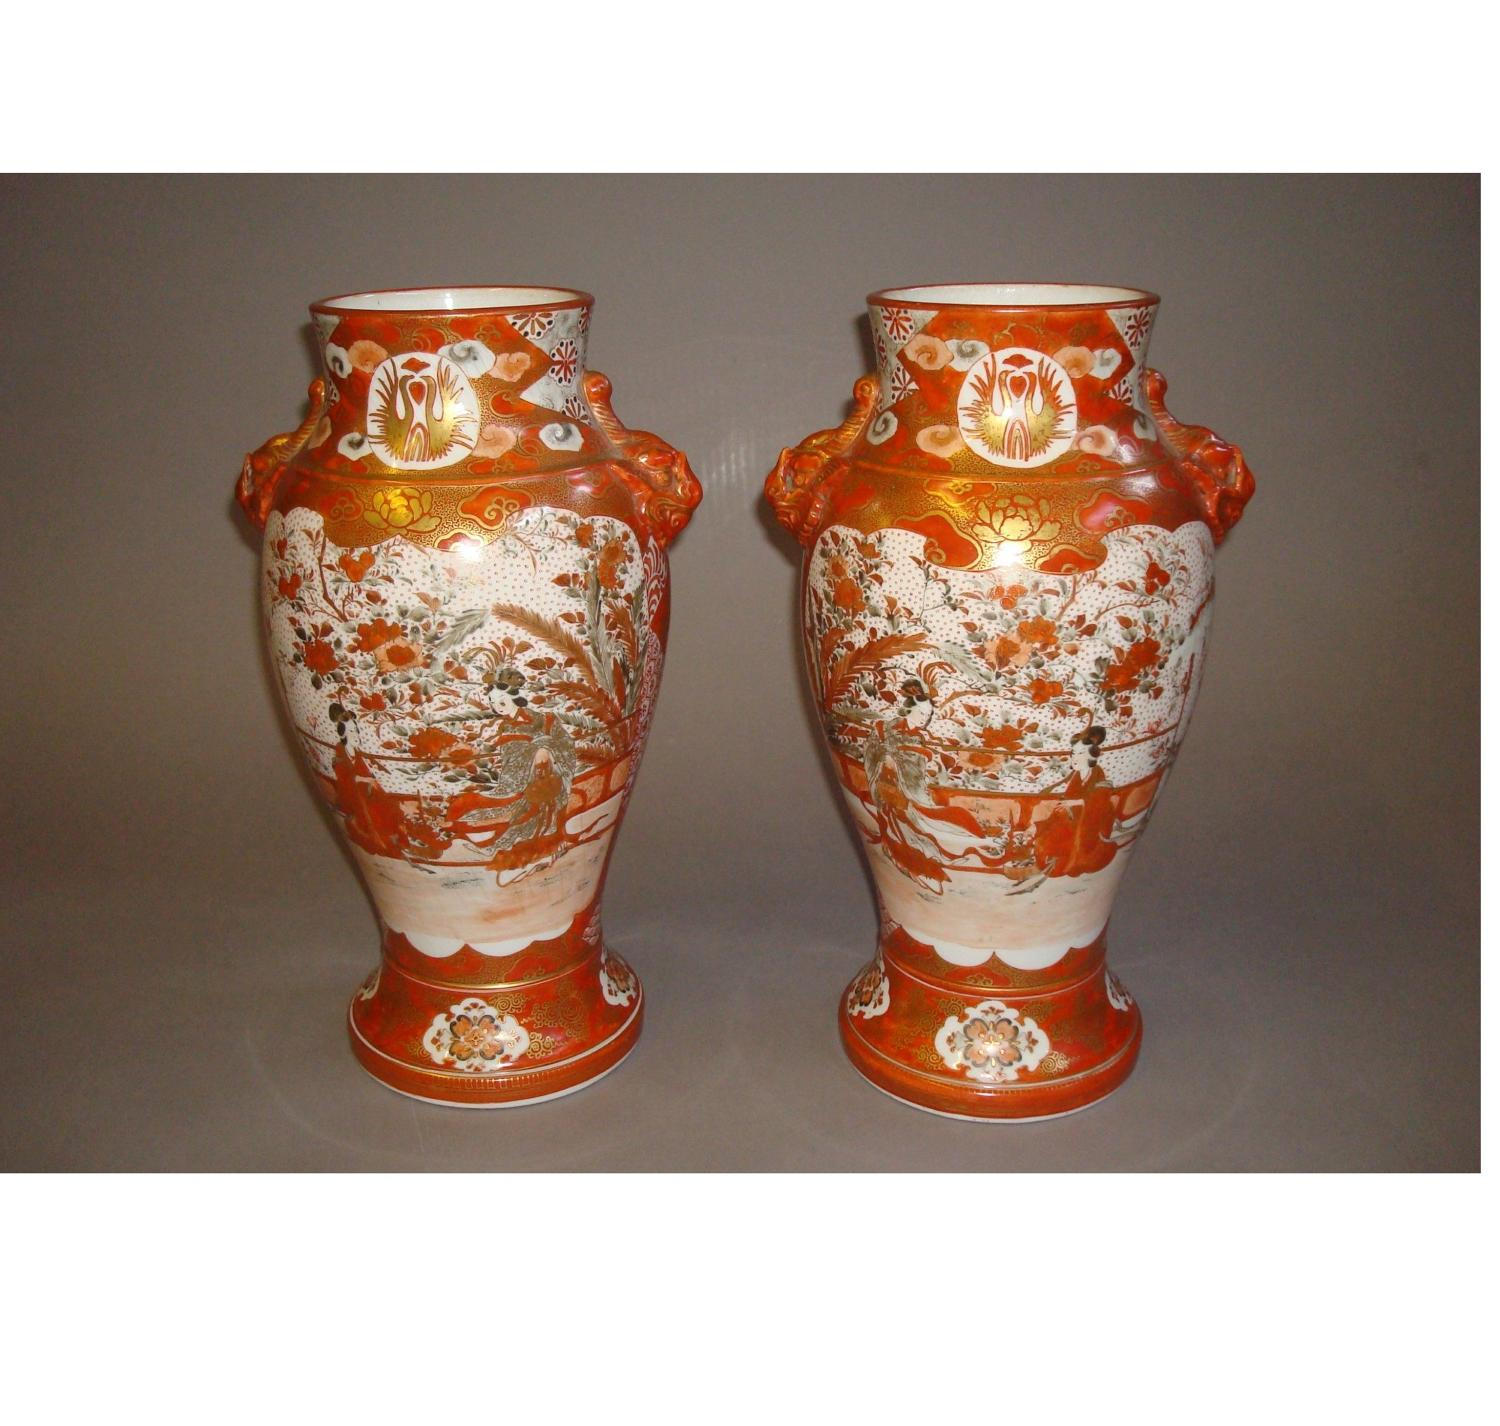 C19th pair Japanese kutani vases